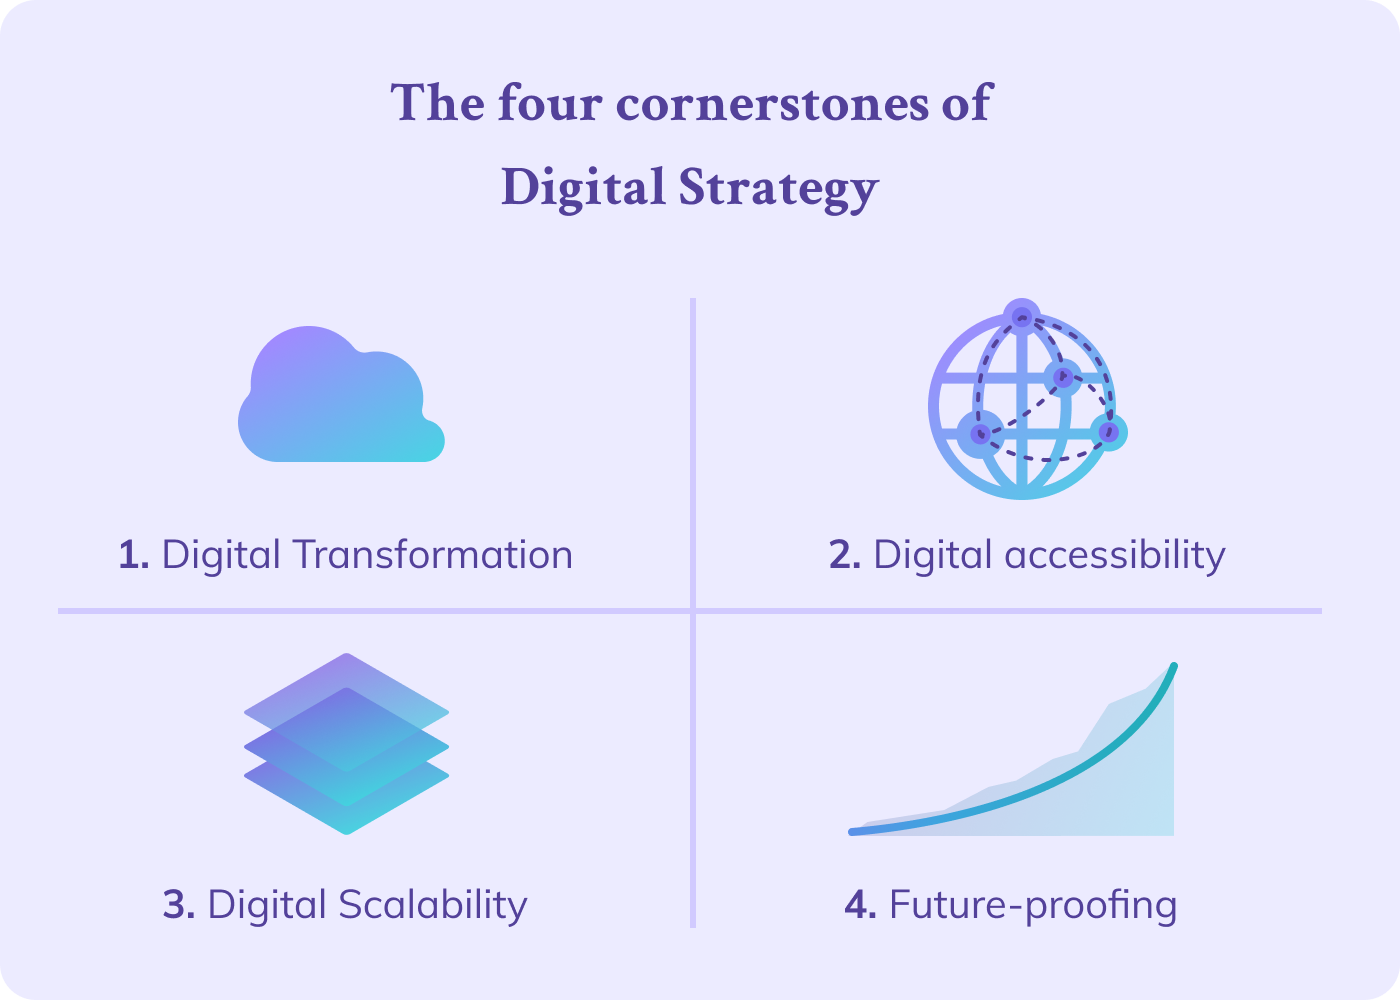 The four cornerstones of digital strategy